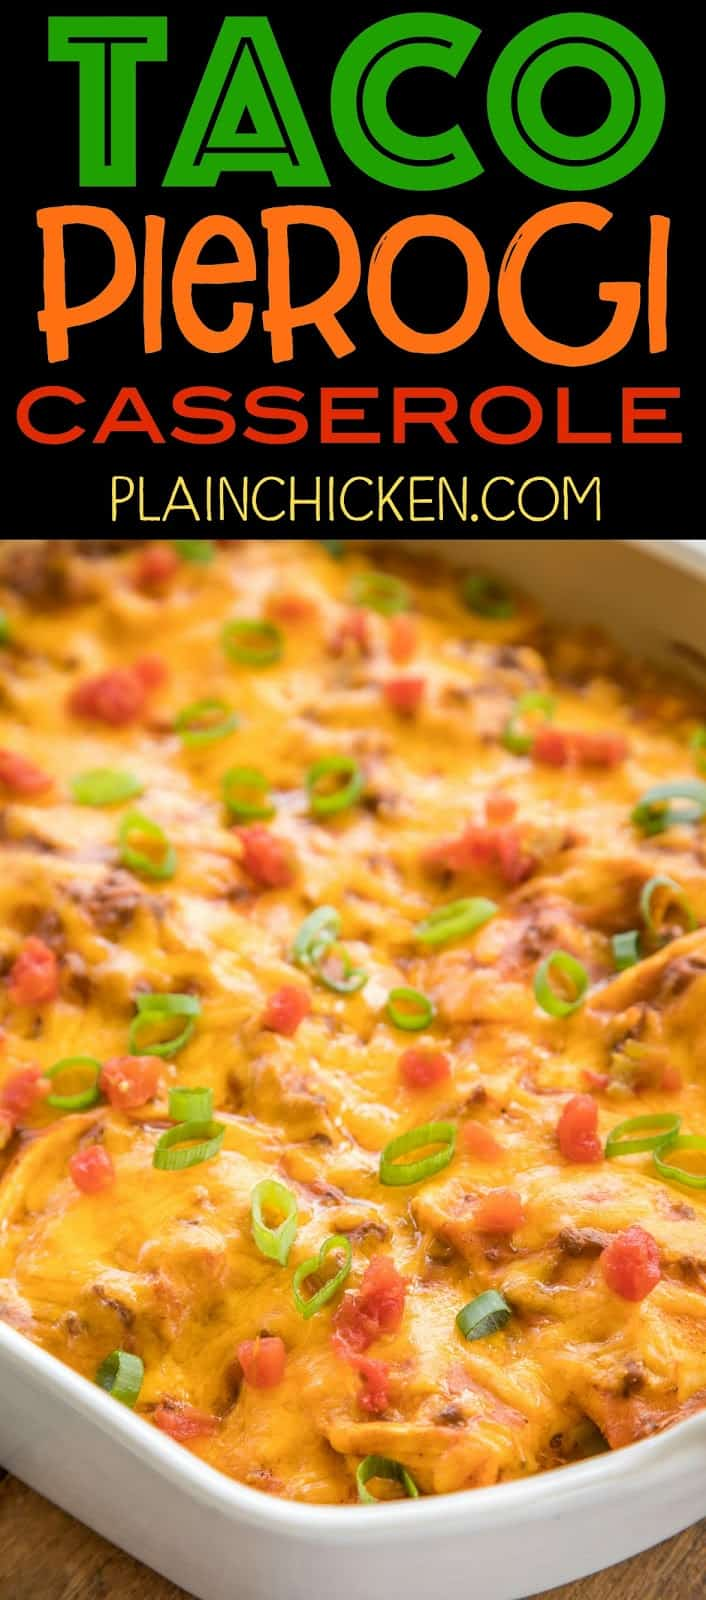 Taco Pierogi Casserole - THE BEST! We ate this two days in a row! Ready in 30 minutes!! Taco meat, velveeta, salsa, cheese pierogies, cream of chicken soup and cheddar cheese. CRAZY good! Everyone cleaned their plates - even our picky eaters! Our favorite Mexican casserole!